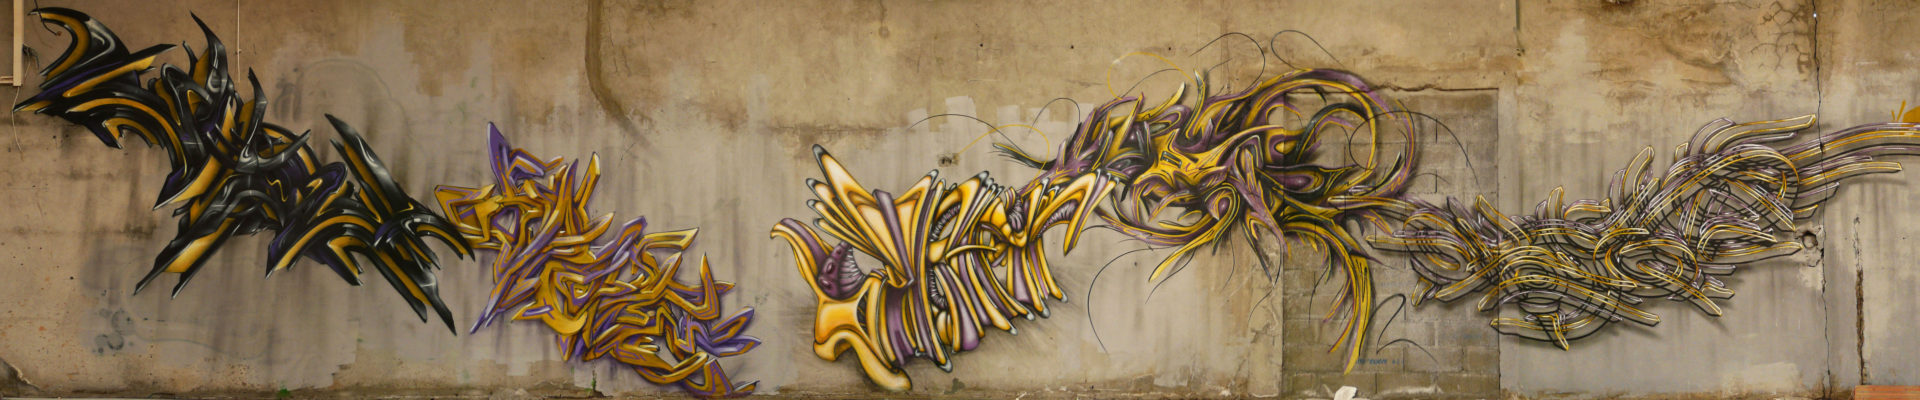 Deft - Graffiti - Toulouse